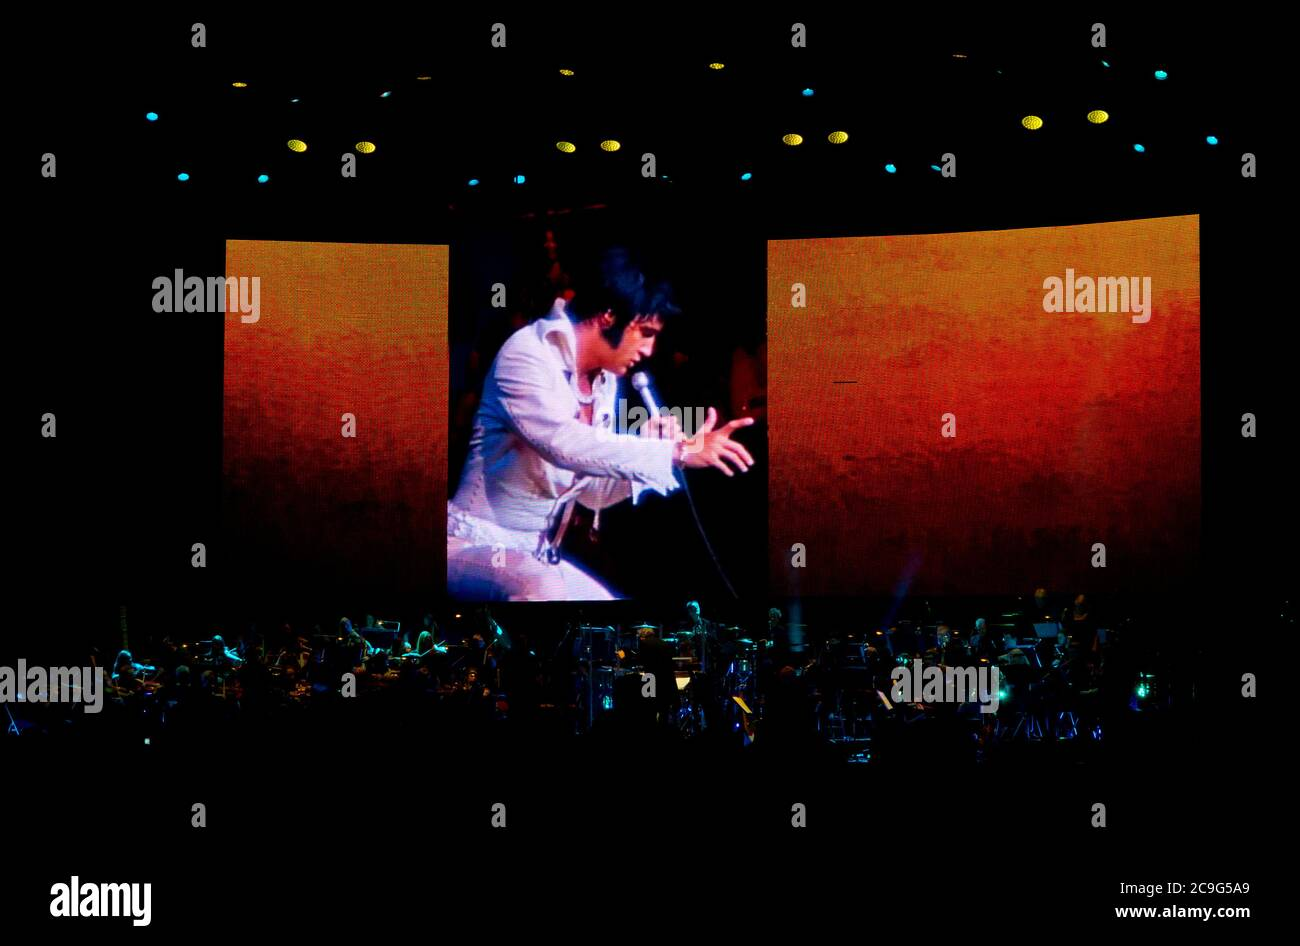 Elvis Presley In Concert Live on Screen with the Royal Philharmonic Orchestra 2016 a concert tour with video footage of Elvis with a live orchestra. Stock Photo